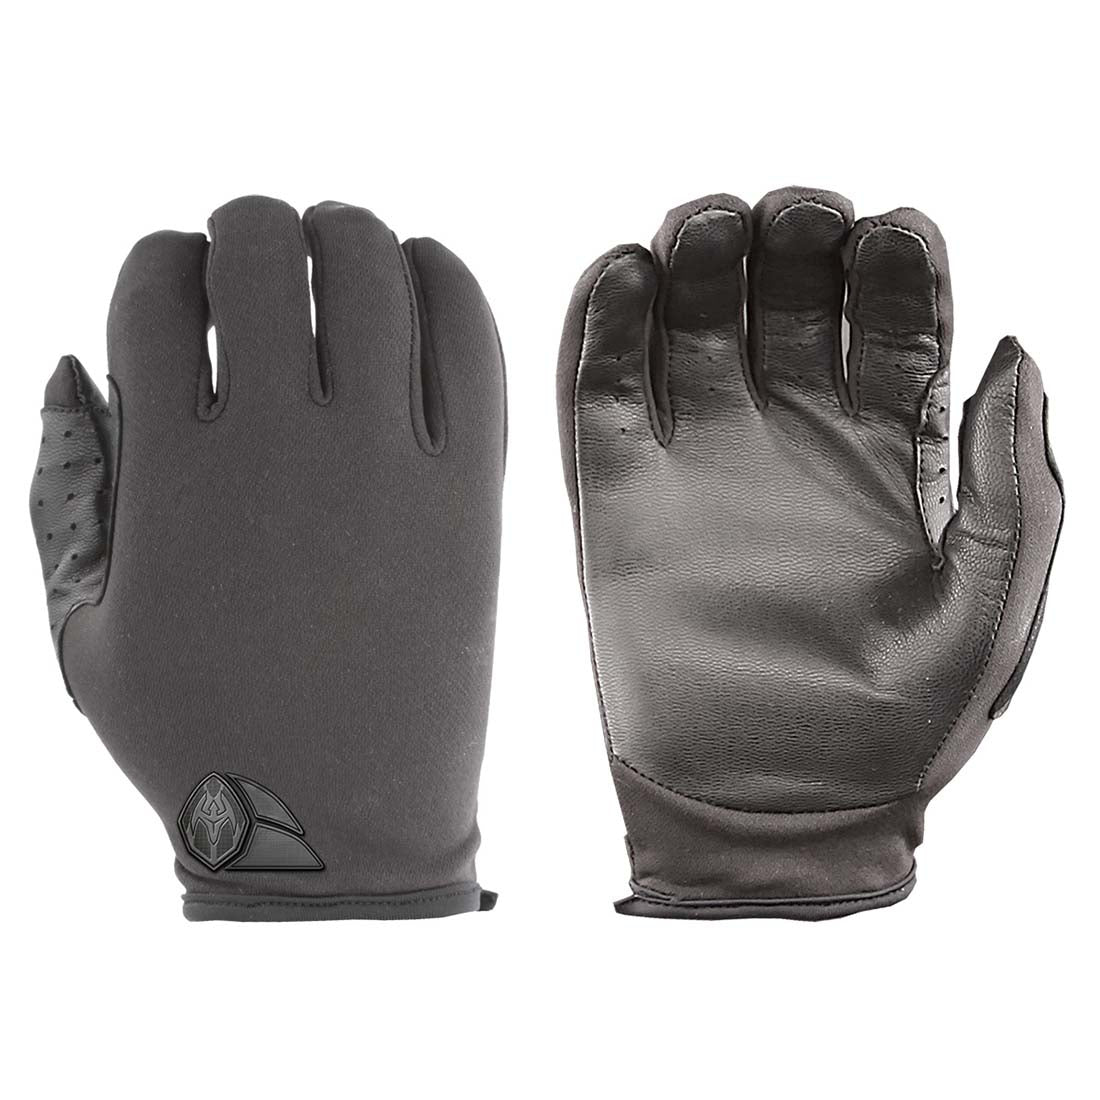 Damascus Gear Lightweight Patrol Gloves